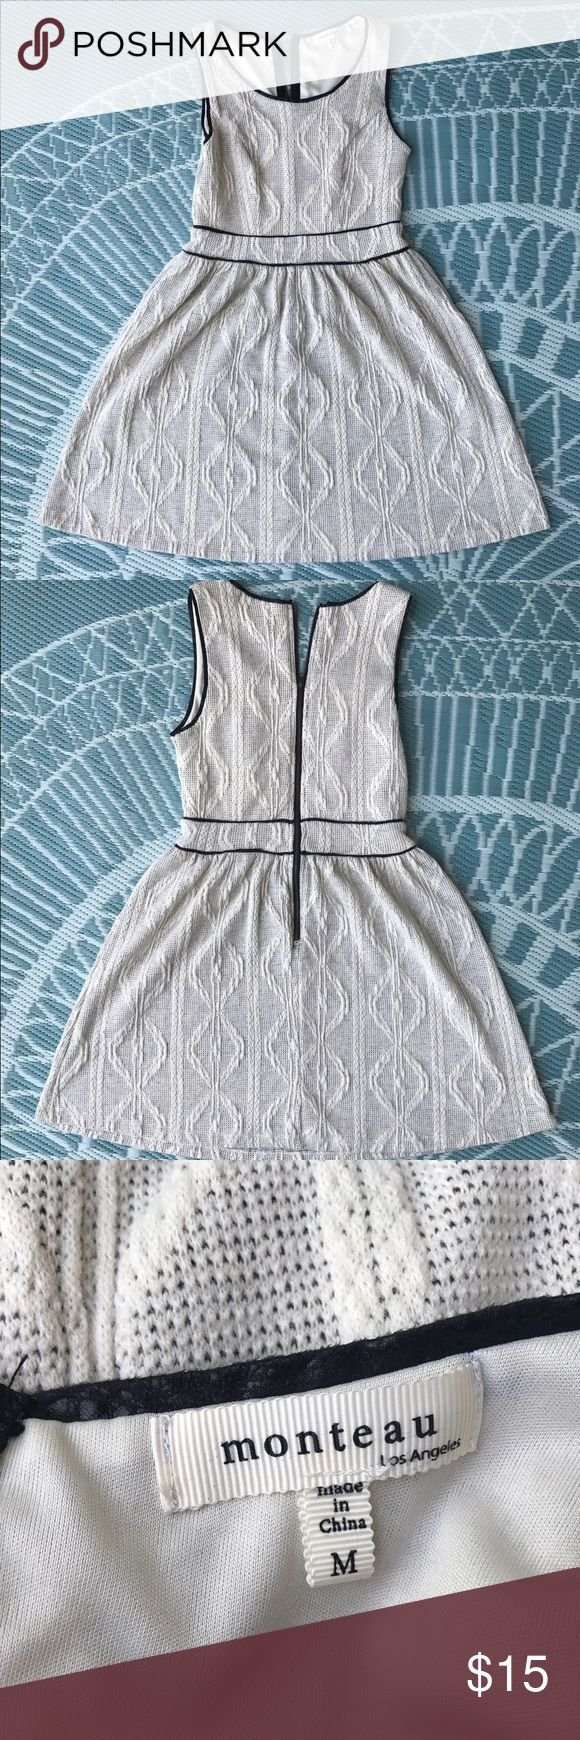 Monteau cream apron dress Elegant, classy dress. Perfect for a special occasion or just to go out. Zipper works perfectly. No defects on the dress. EUC. Monteau Dresses